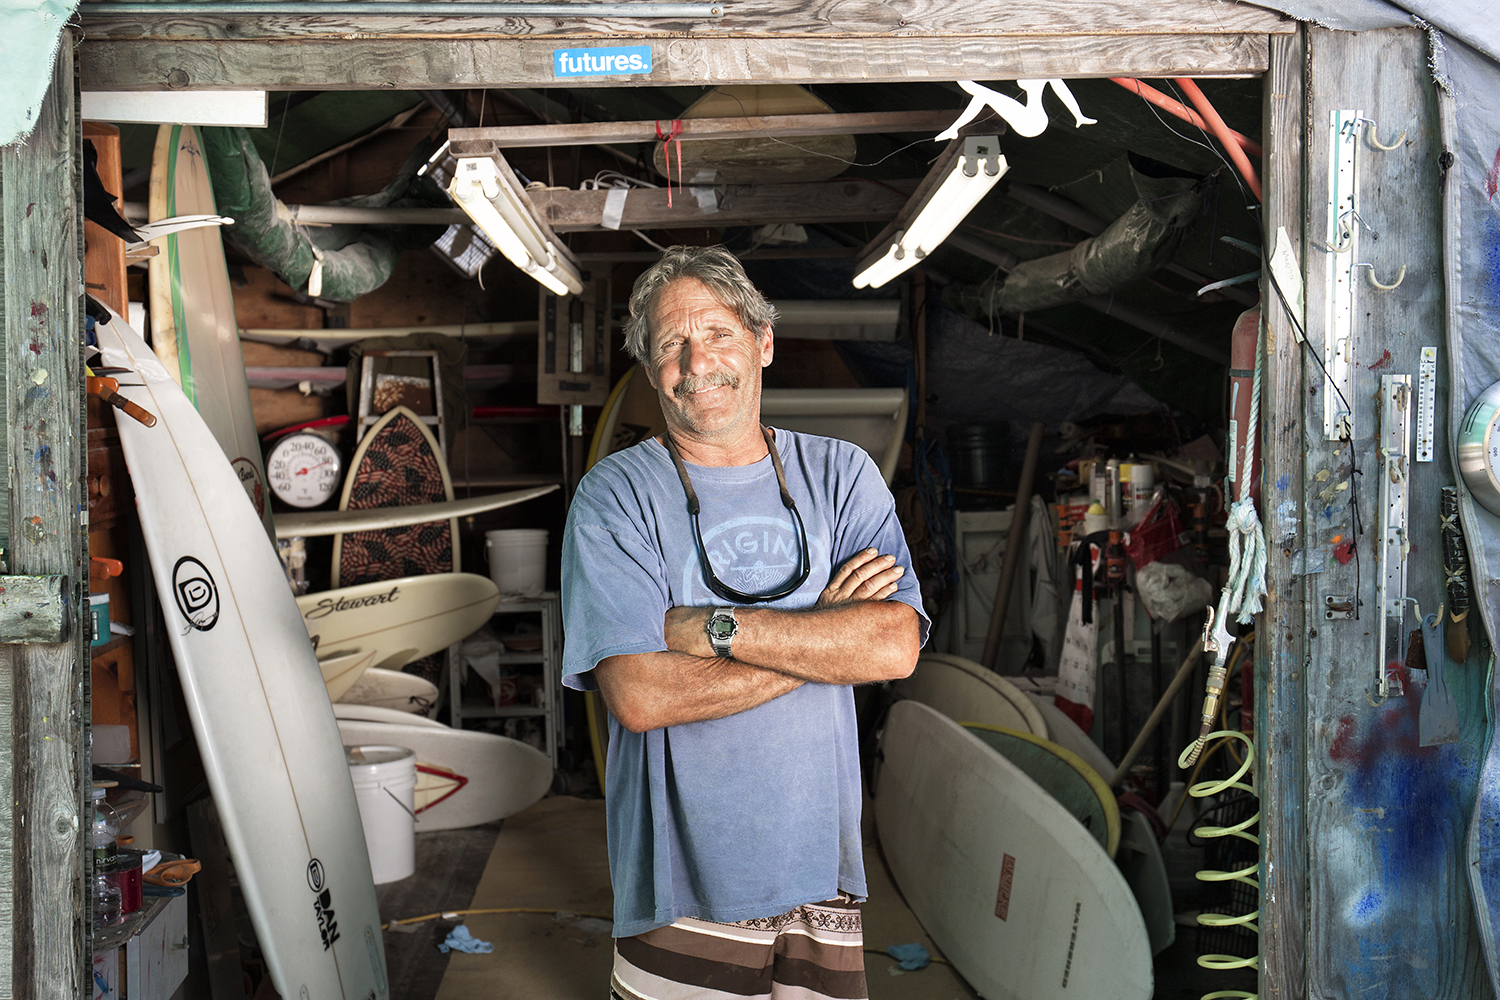 Jim Goldberg, Surf Board Maker, Commercial Fisherman, Hook Surf Boards, Fort Pond